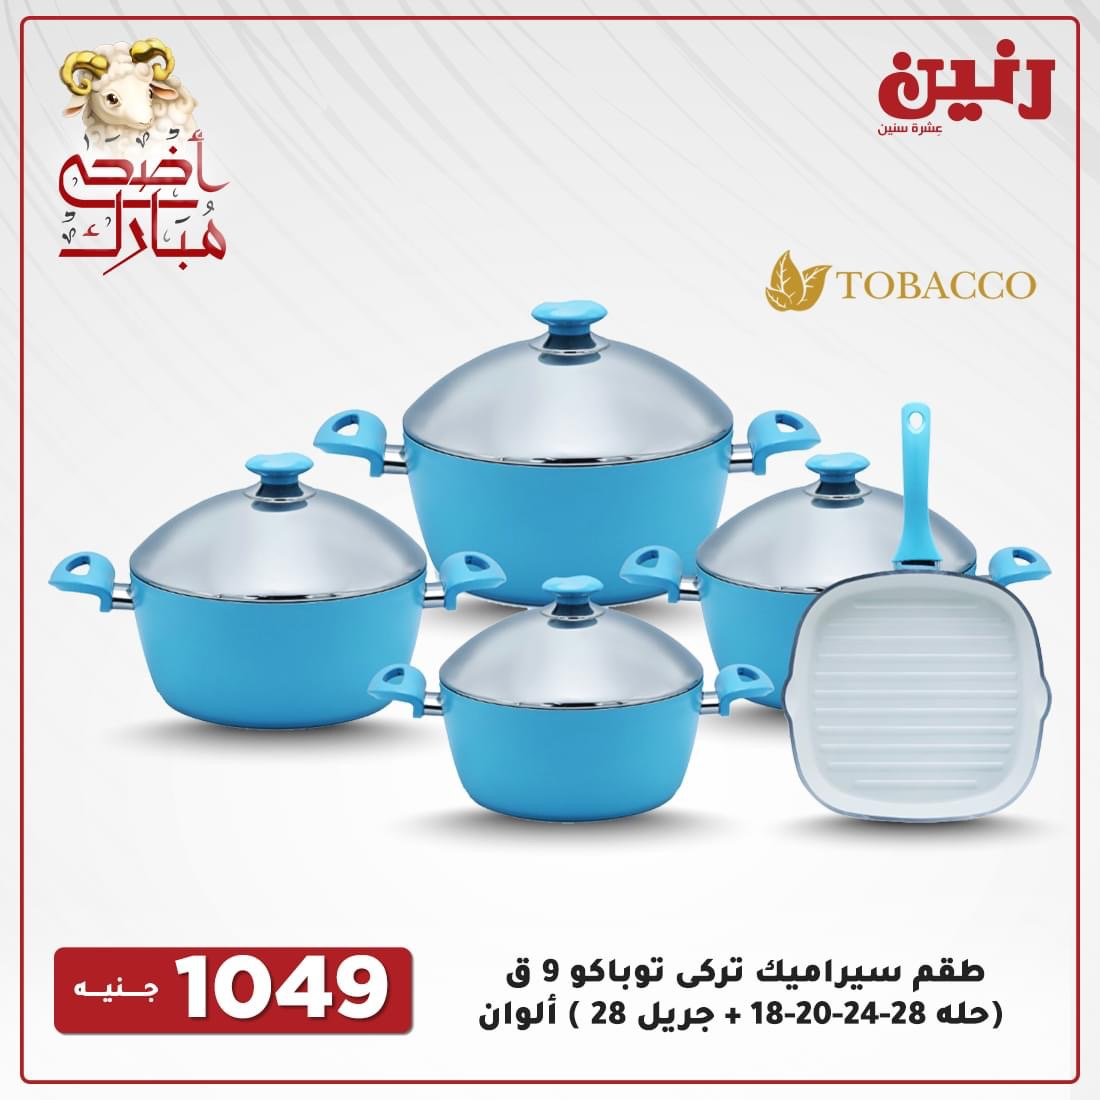 Raneen offers today for appliances and household appliances from July 22 to 24, 2021 33